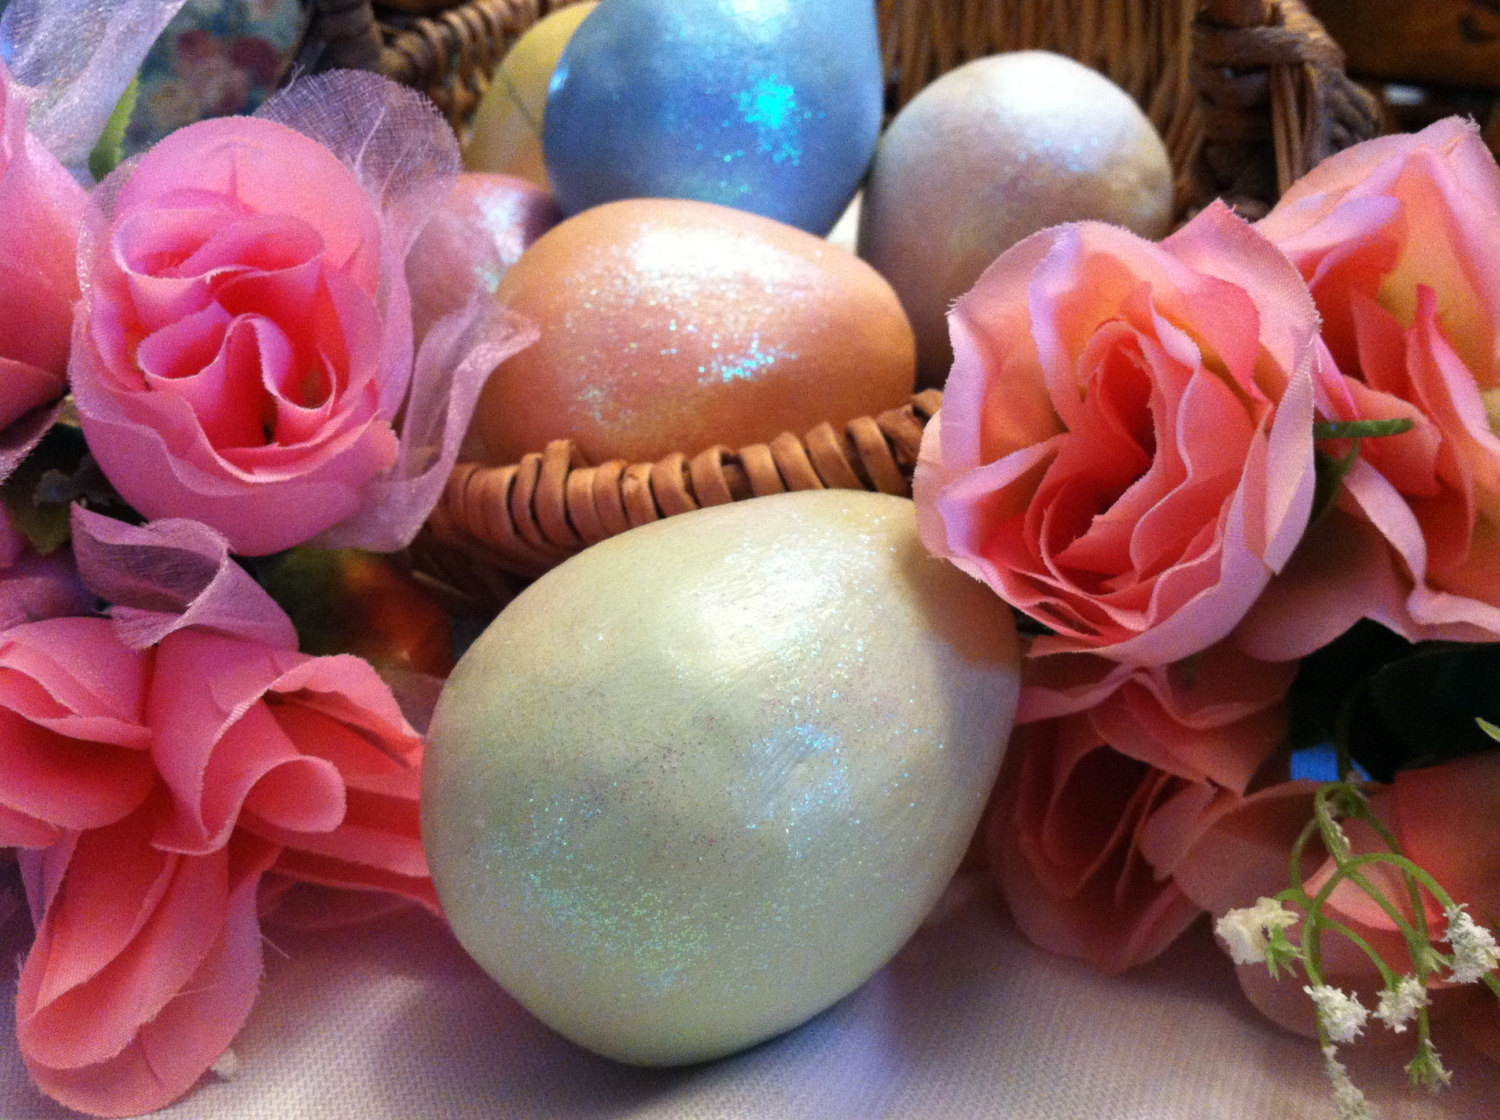 Ceramic Pastel Green Egg for Spring Display - glitter glazed with rattle inside